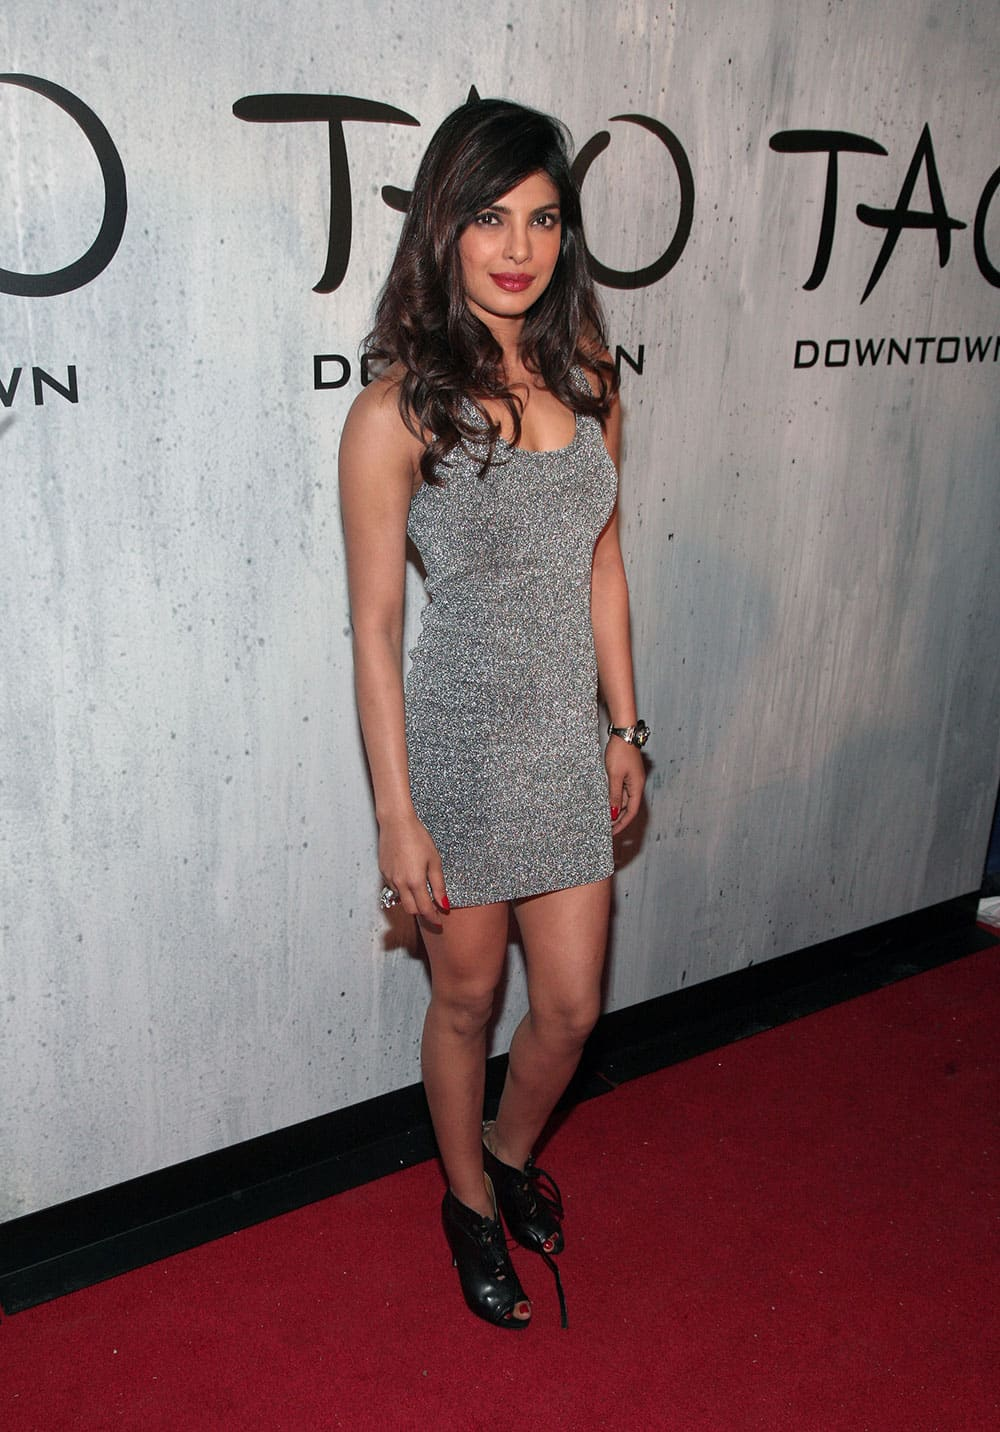 Actress Priyanka Chopra attends the TAO New York Downtown Opening Party.